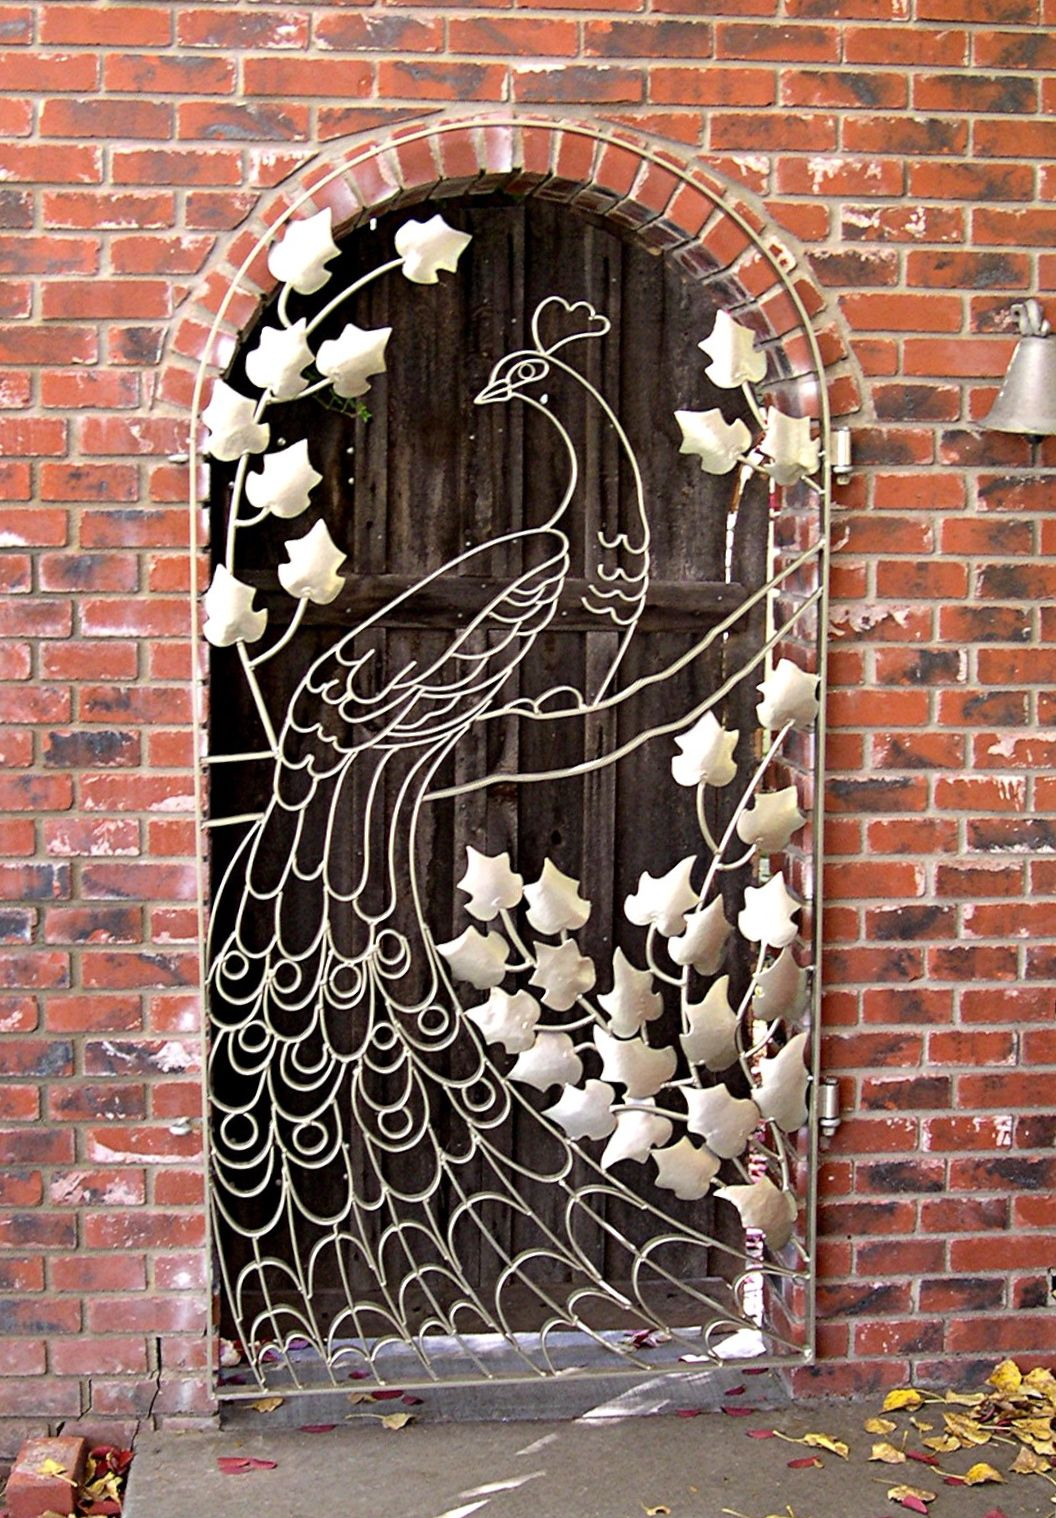 Peacock gate this would be wonderful as a thread sketched art